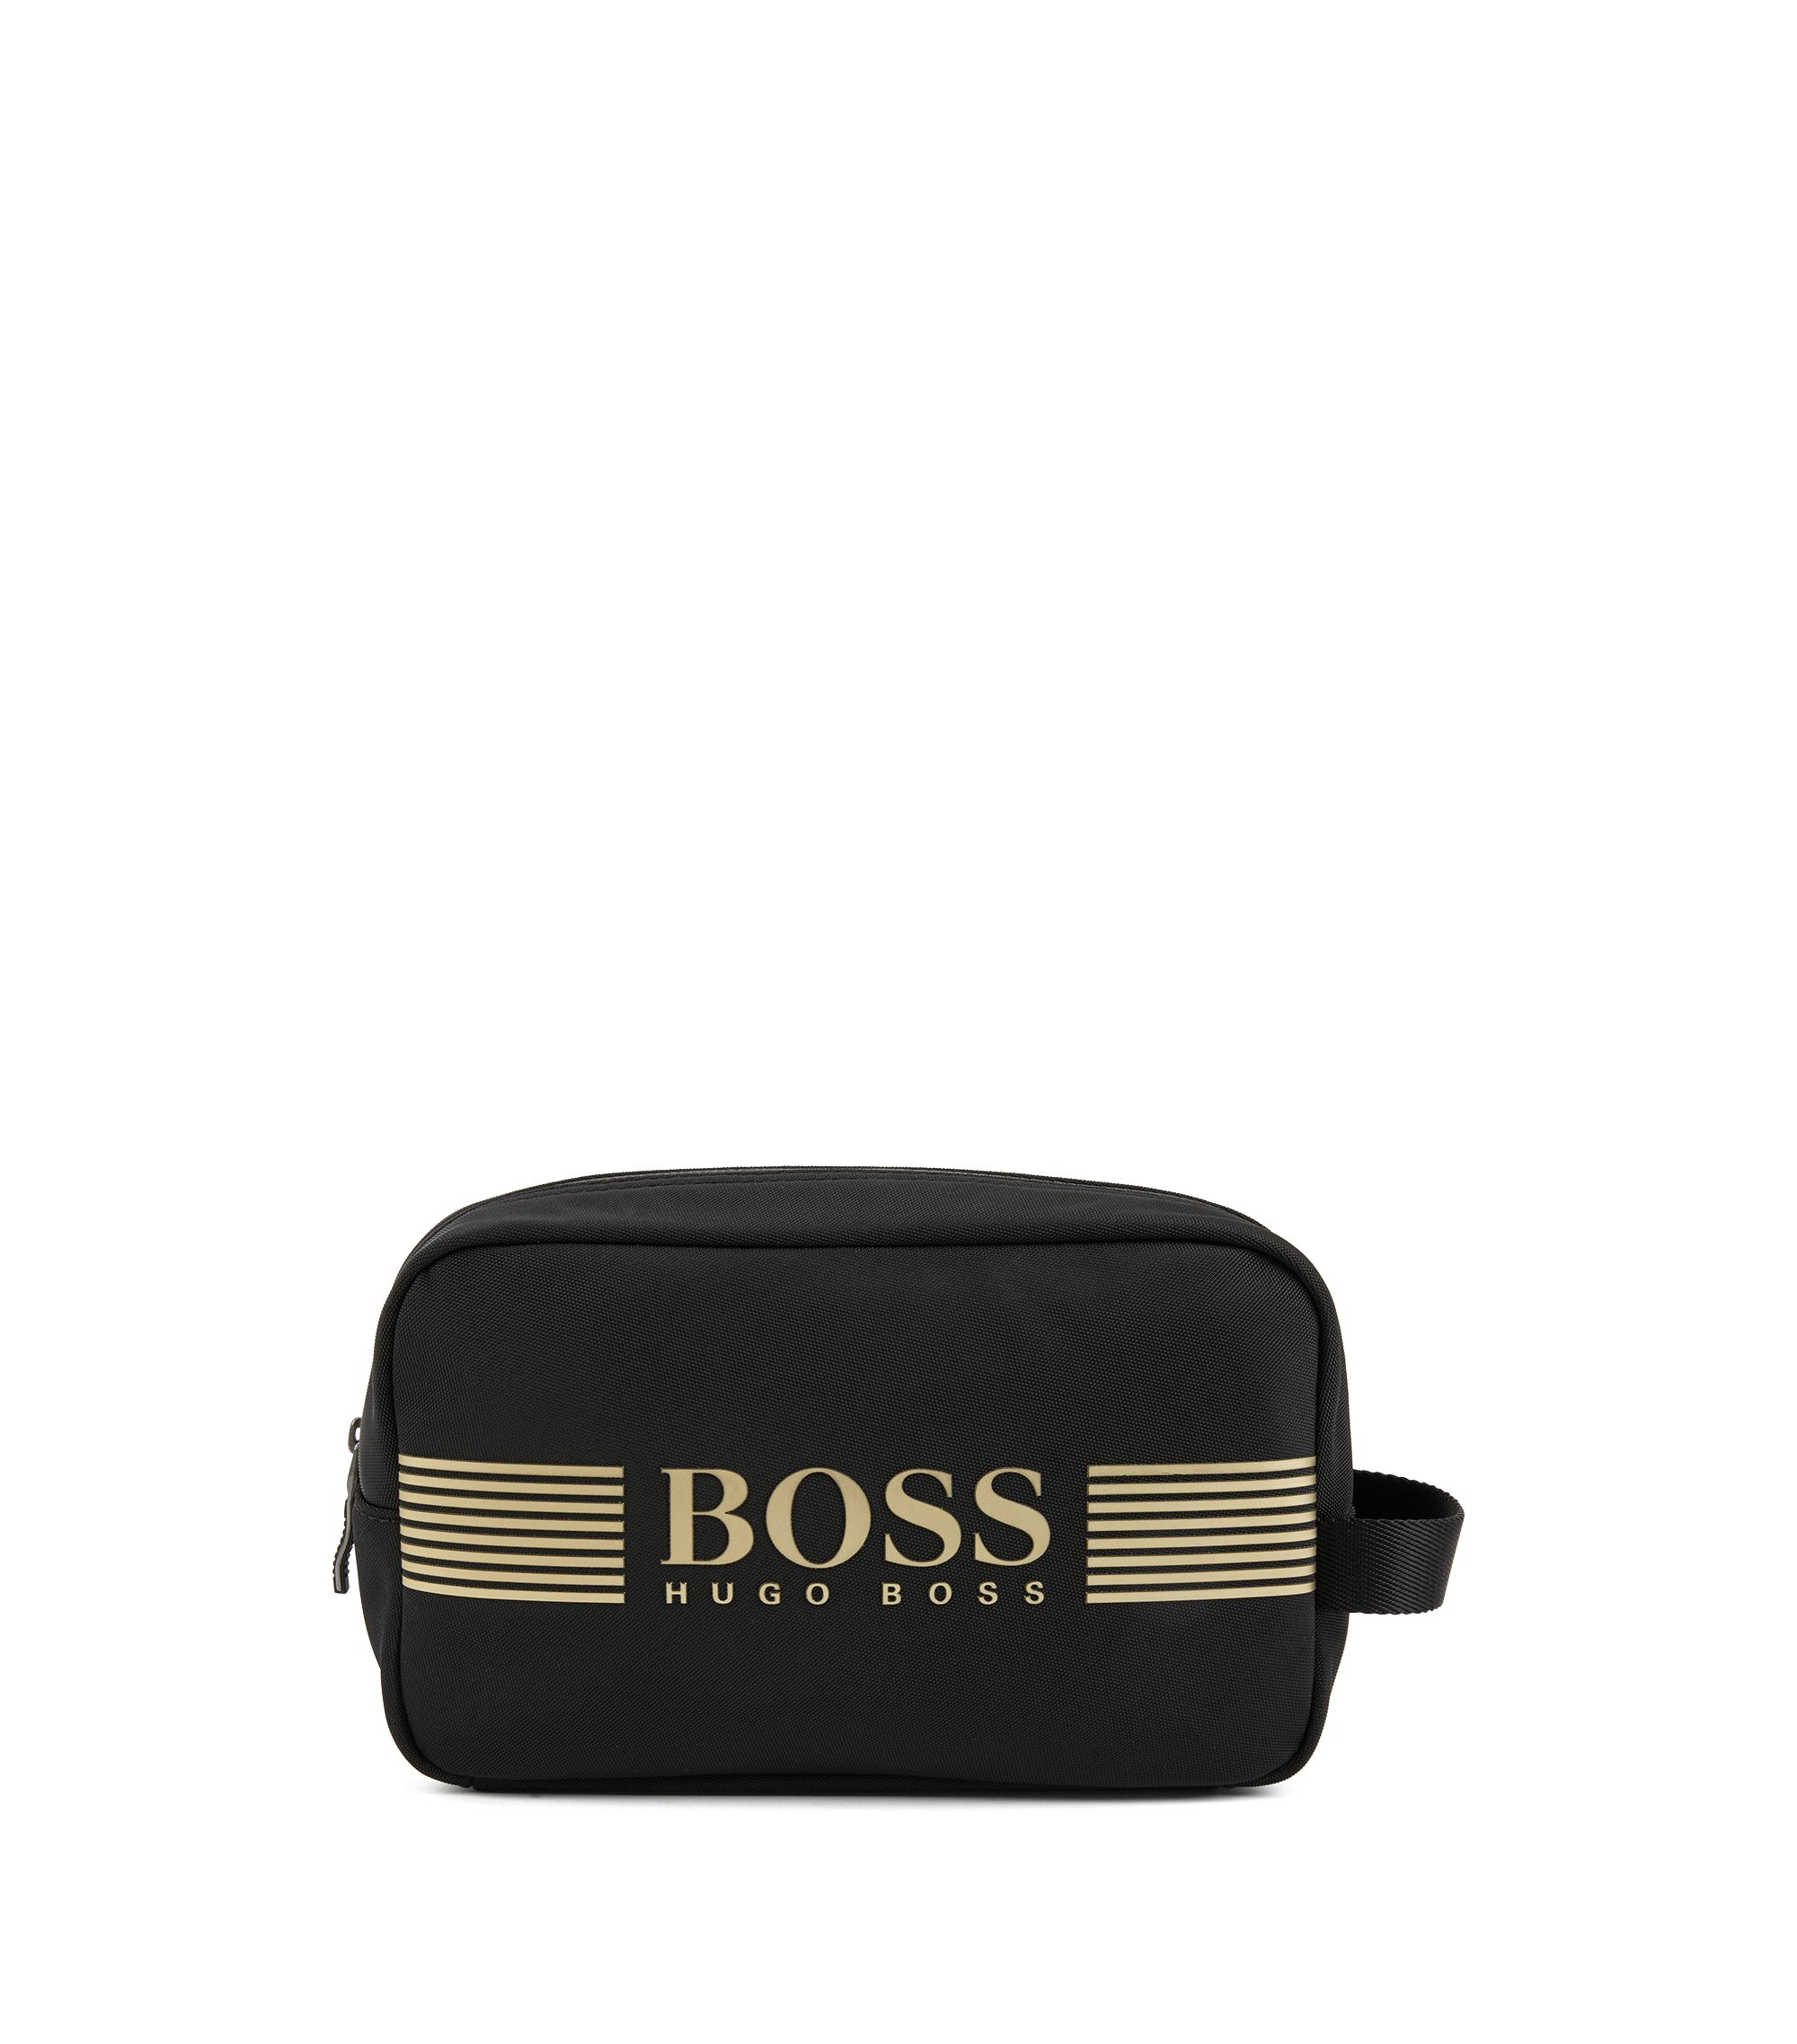 Wash bag in durable nylon, Black